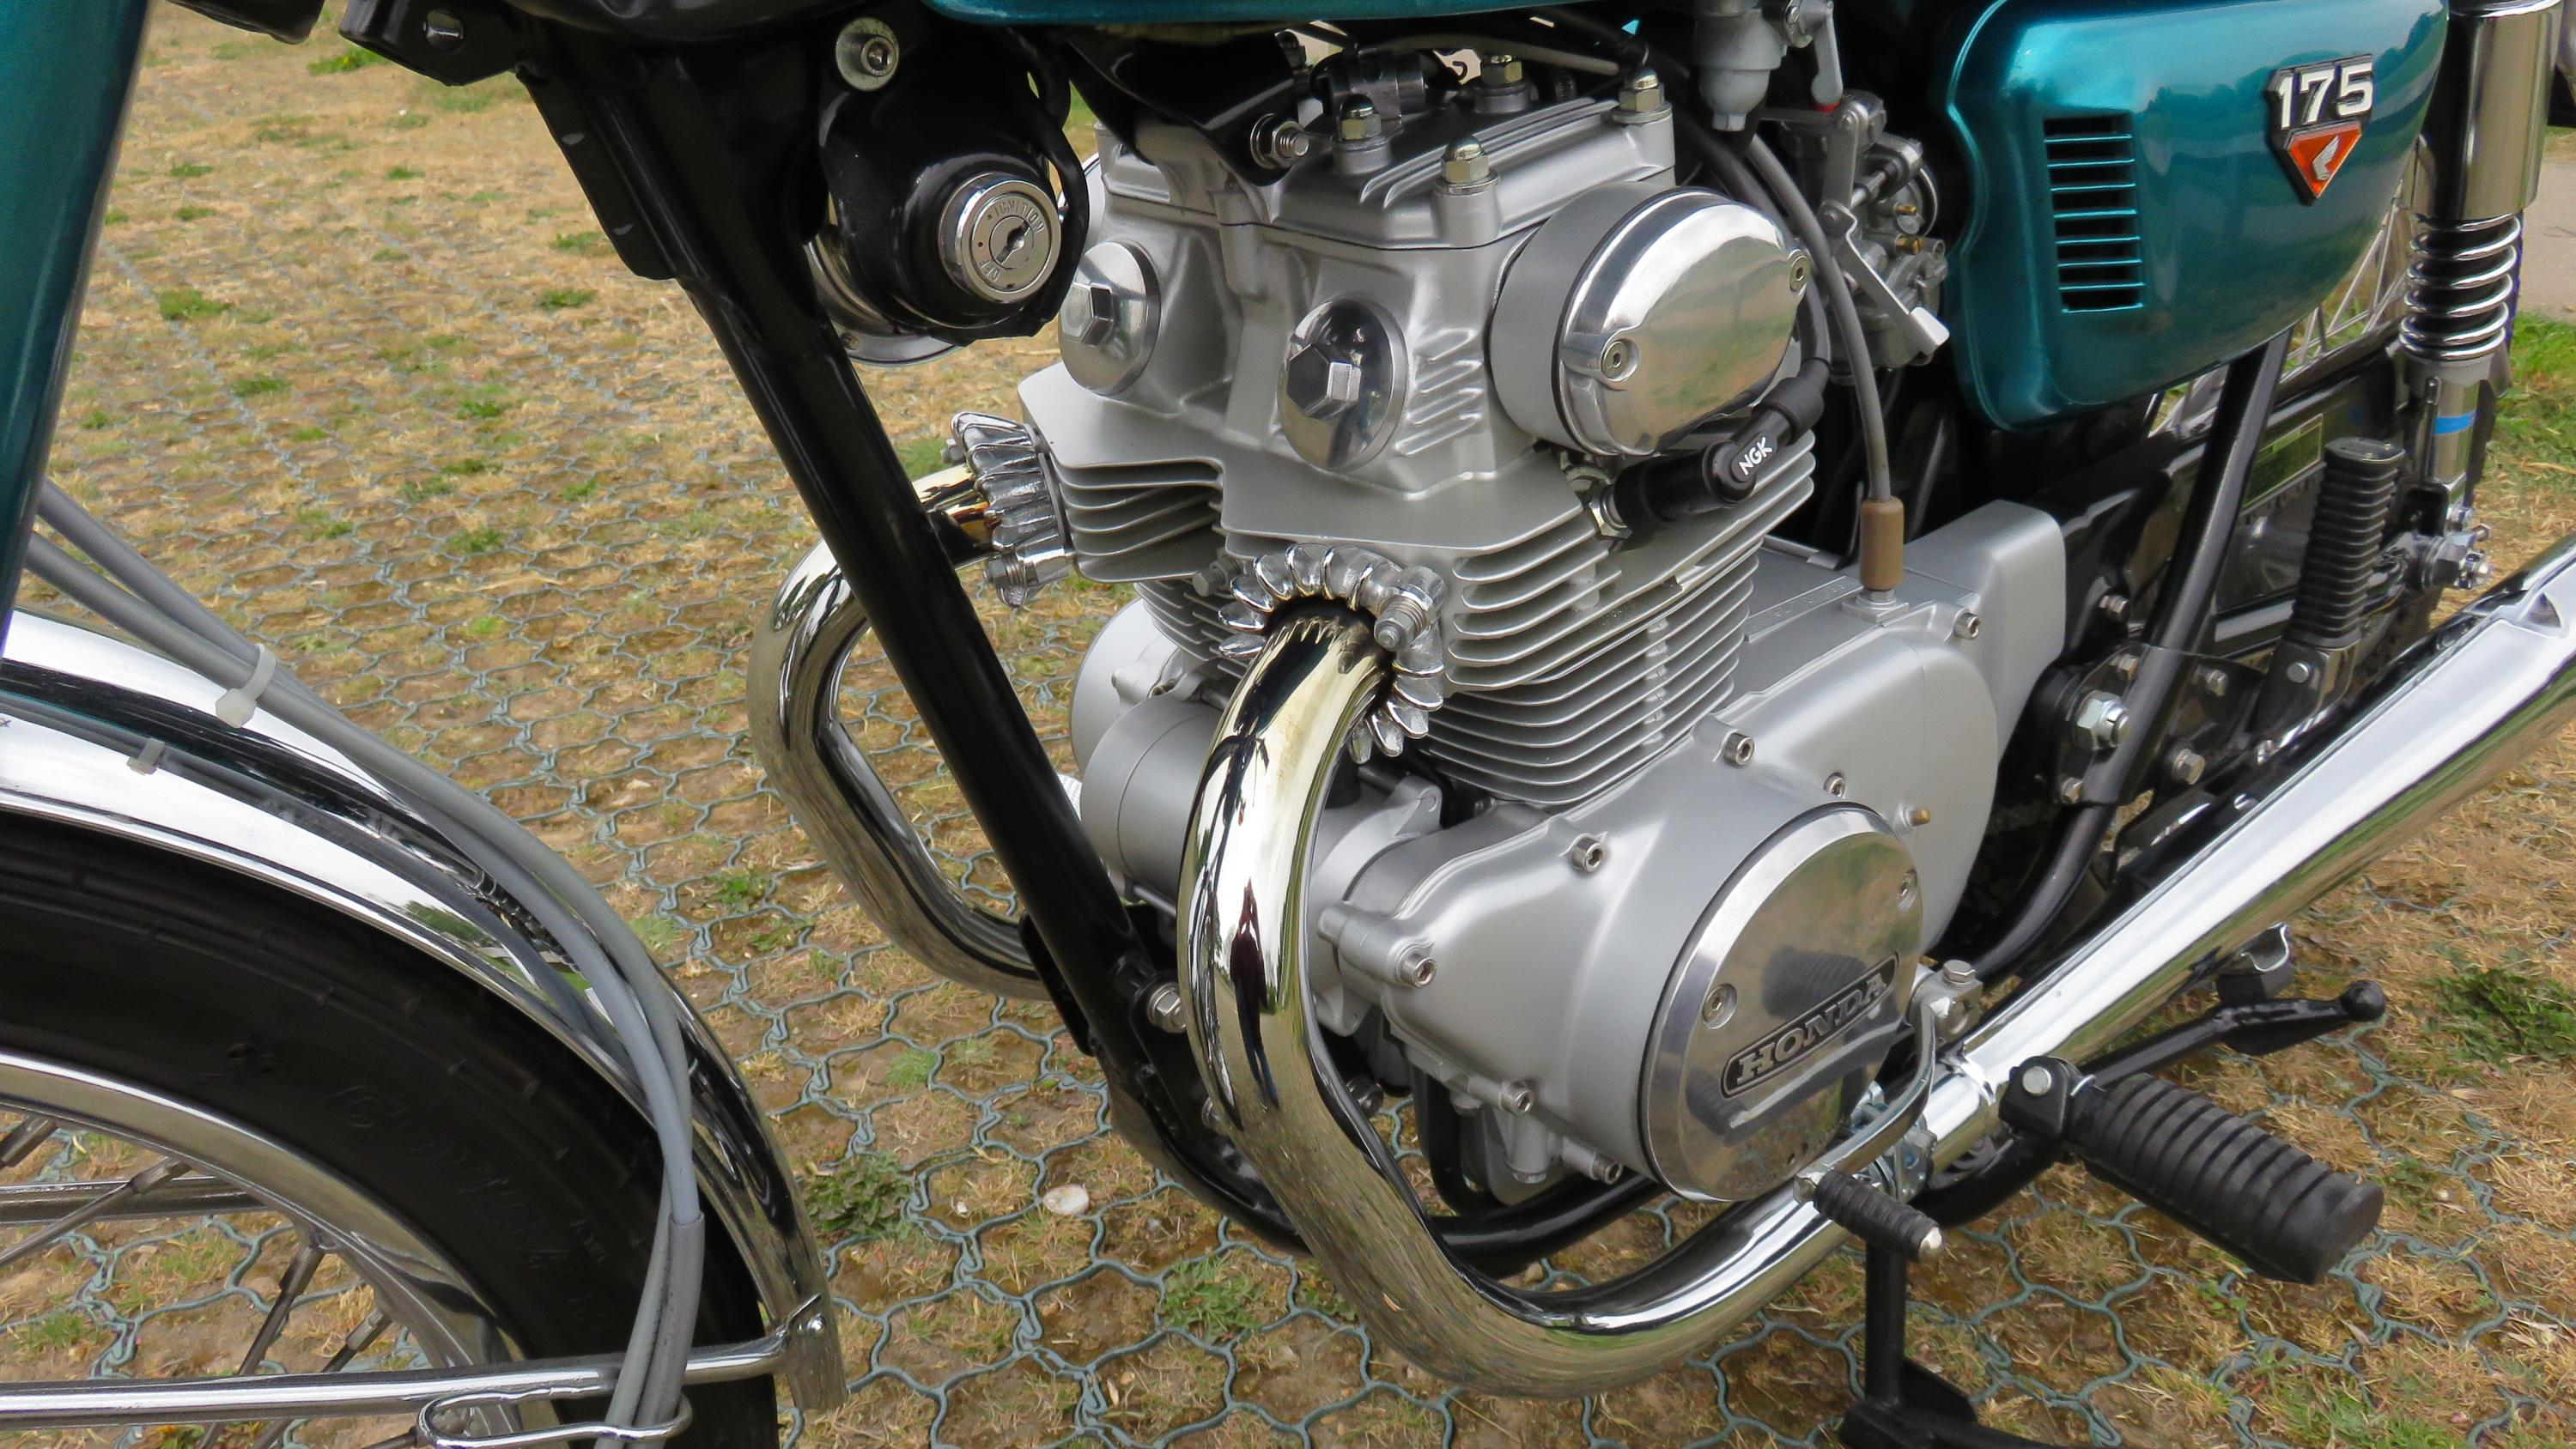 CB175 K6 Restored and finished-img_3123.jpg